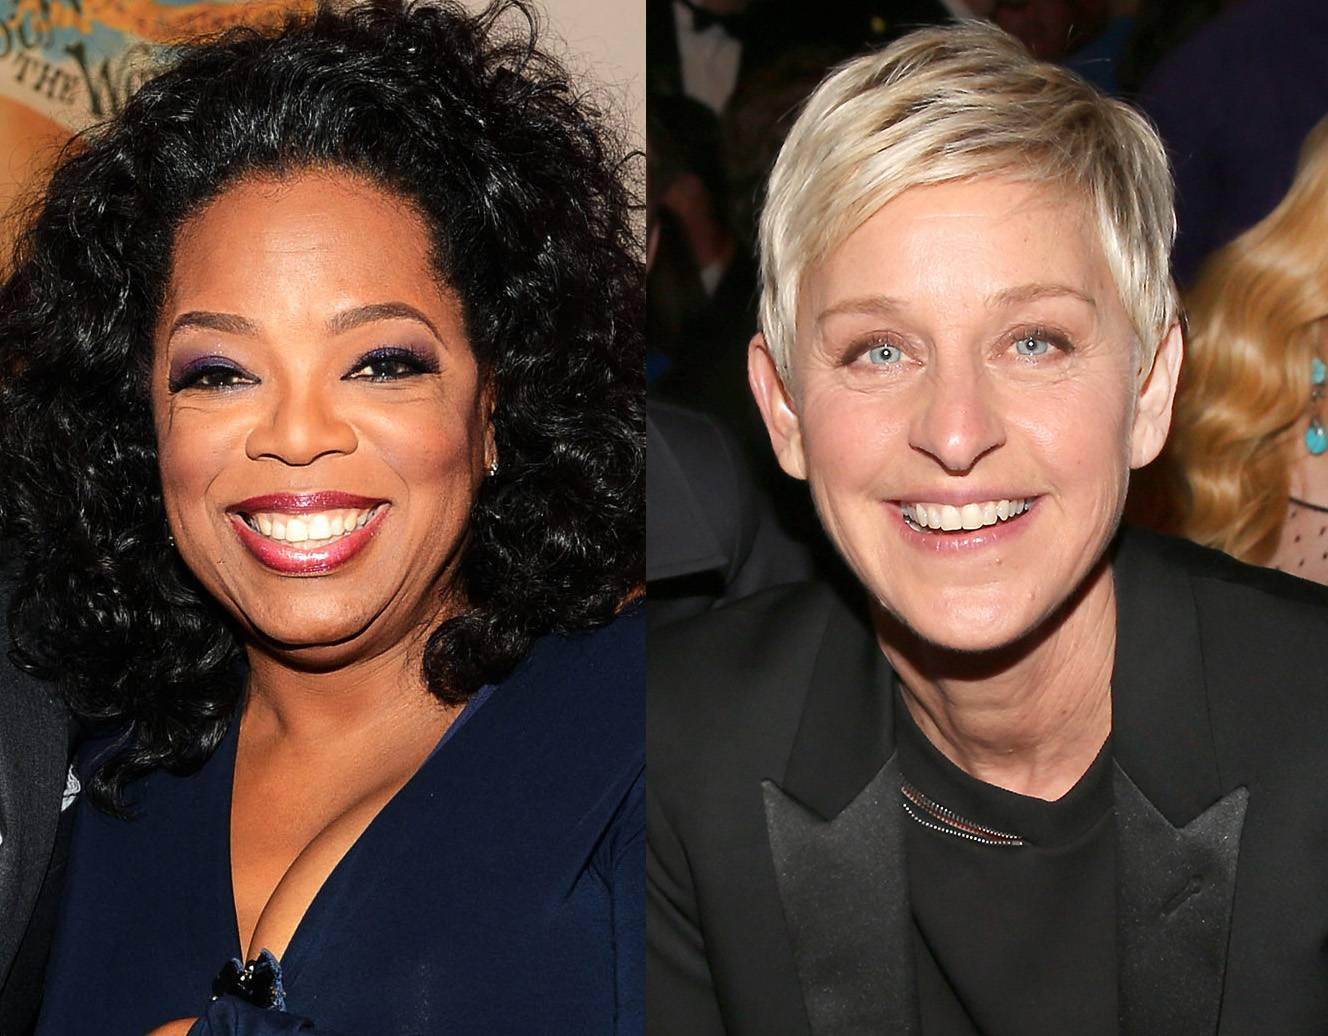 Oprah Winfrey - Oprah Winfrey supported her friend Ellen DeGeneres by guest starring on a 1997 episode of DeGeneres' sitcom, Ellen, where DeGeneres' character reveals she is gay to Winfrey, who plays her therapist. That same year, DeGeneres came out publicly in an appearance on The Oprah Winfrey Show. (Photos from left: Larry Busacca/Getty Images, Christopher Polk/Getty Images)